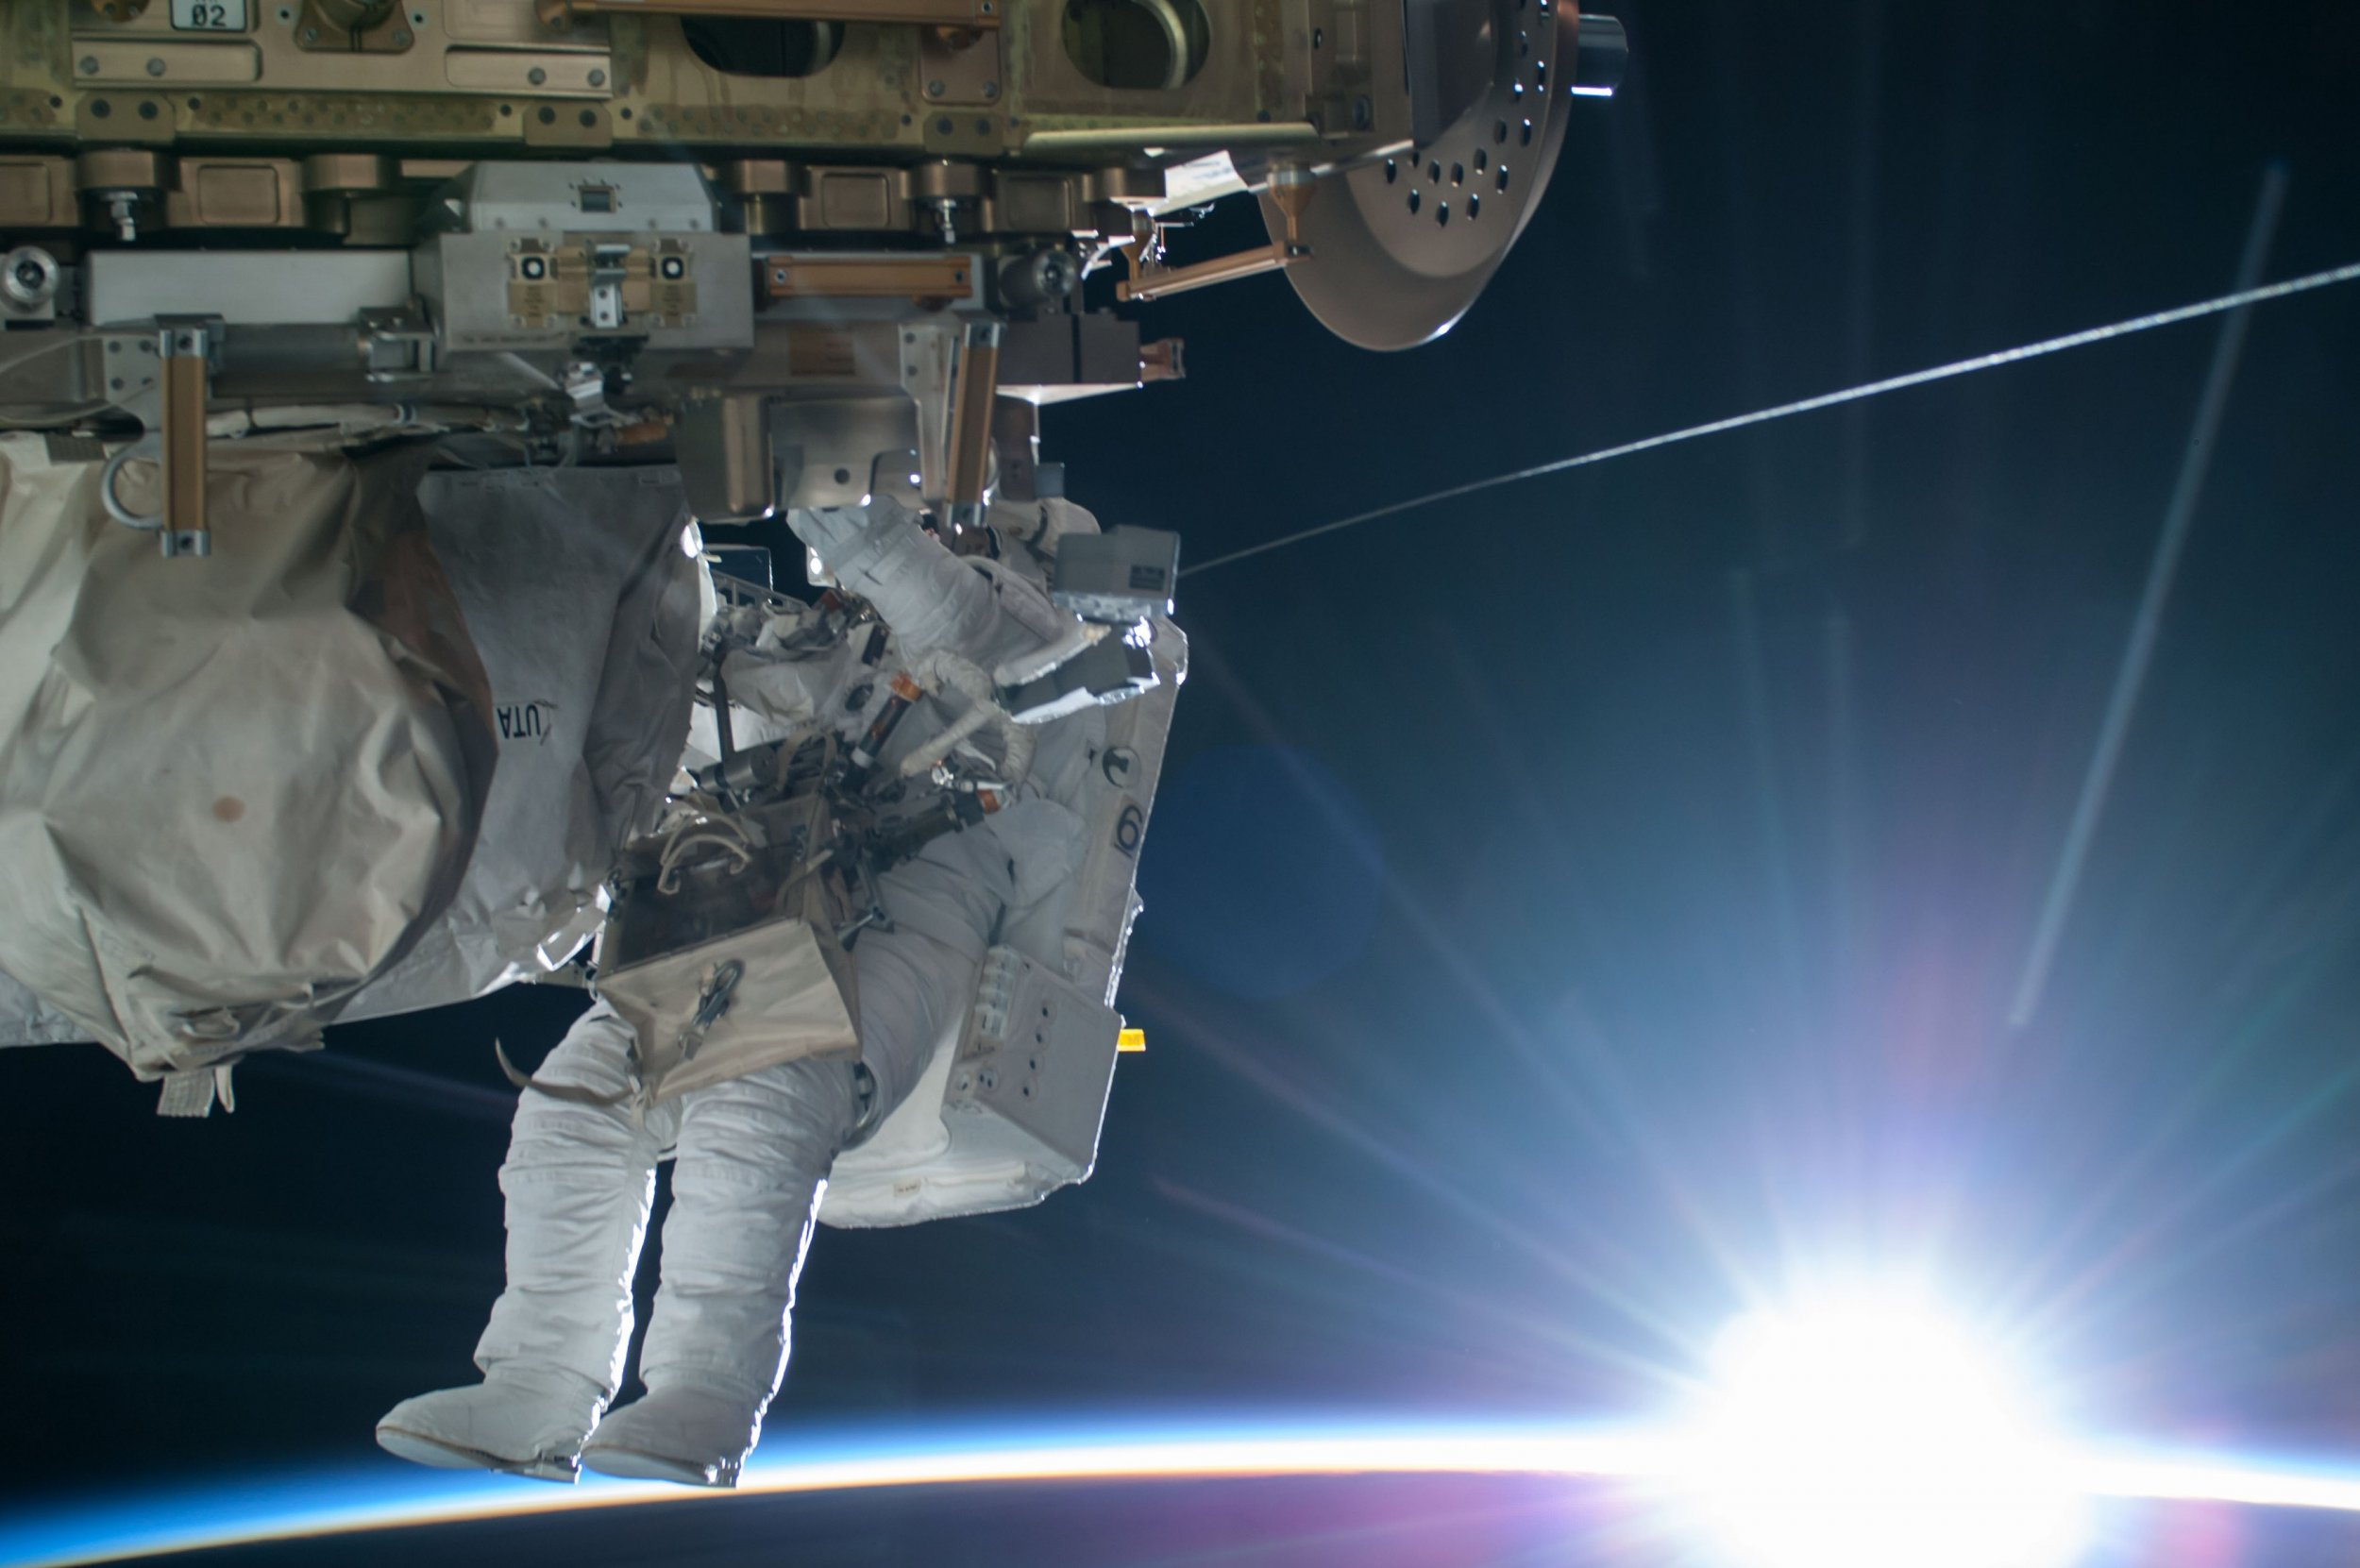 2015-02-25T155053Z_1316189460_TM3EB2P0SXW01_RTRMADP_3_USA-SPACE-SPACEWALK